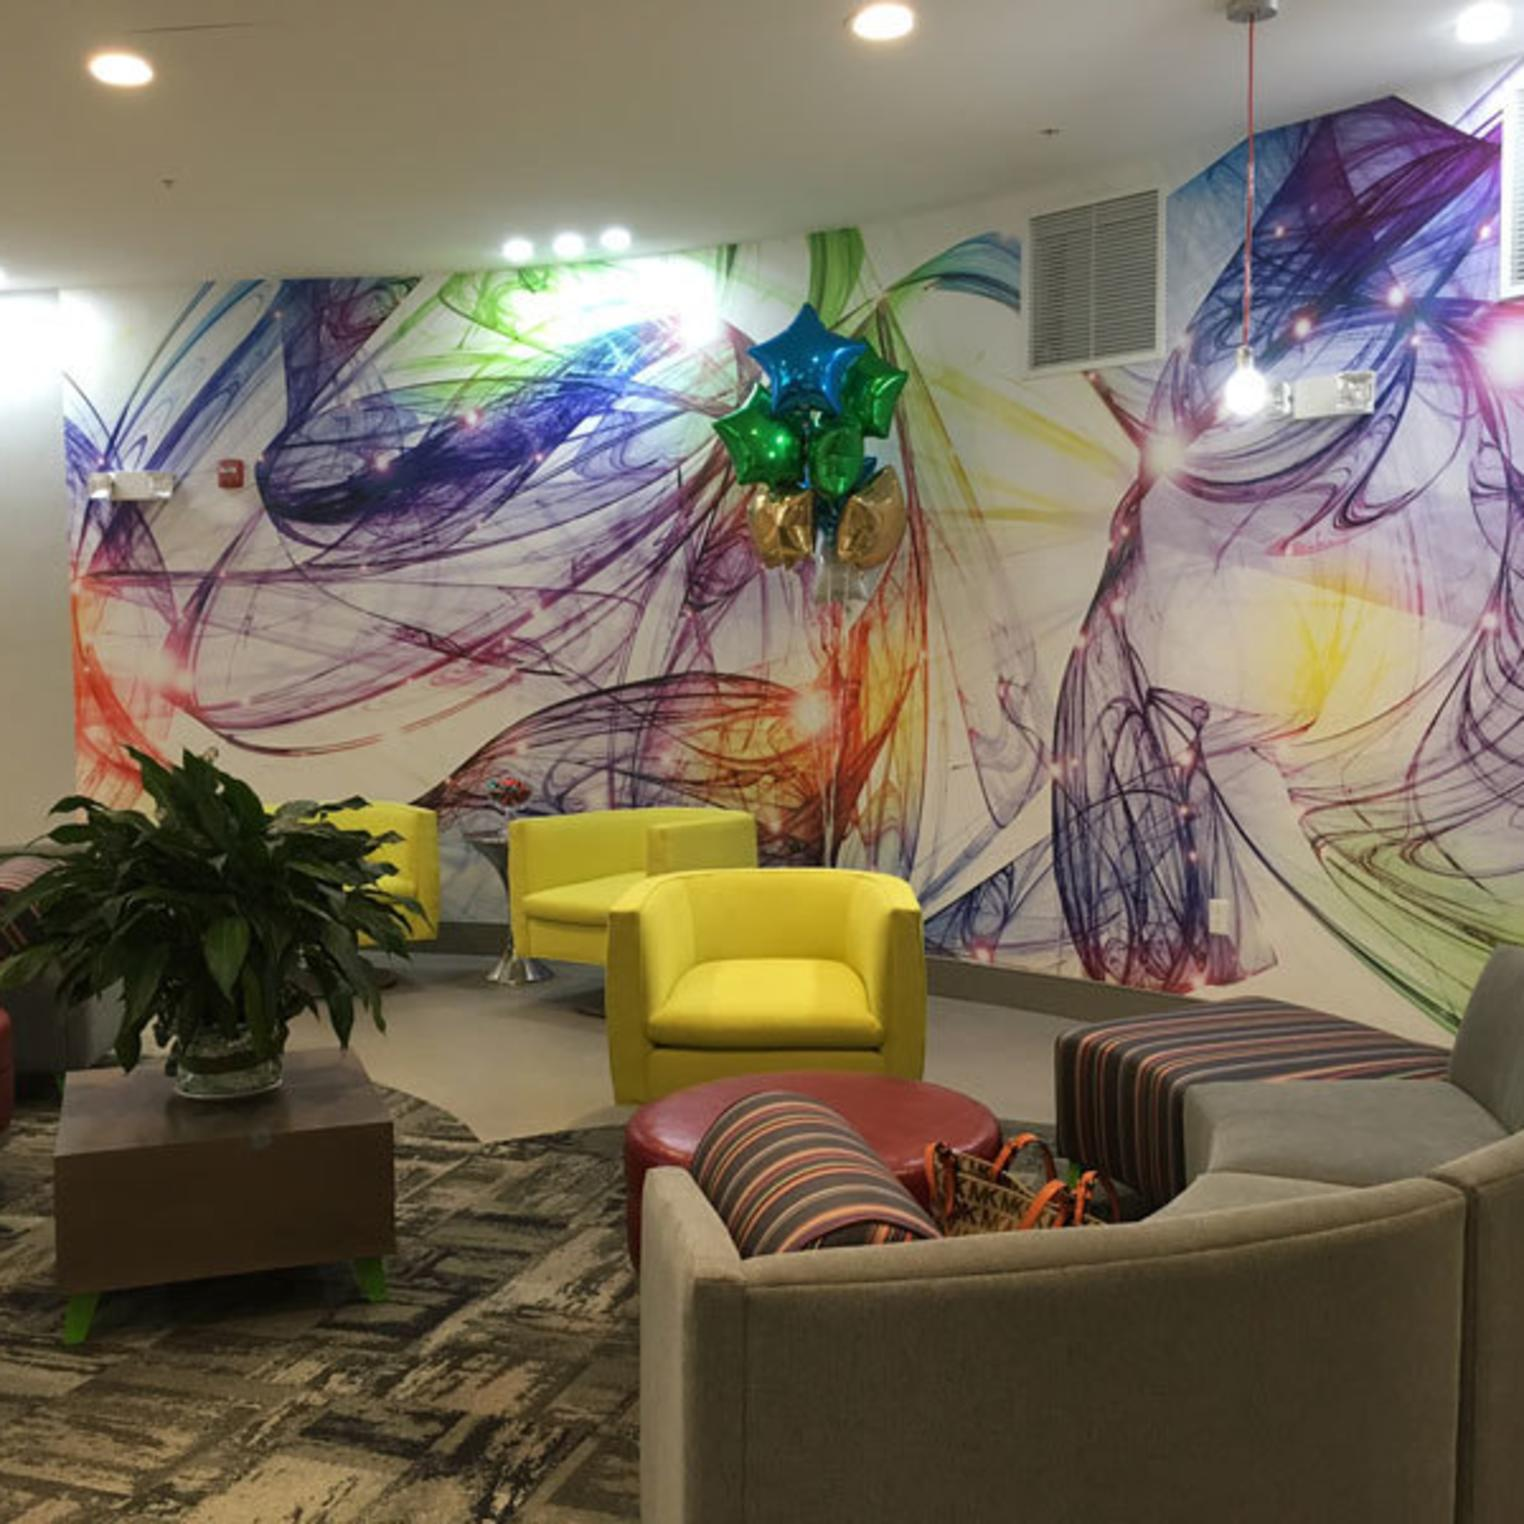 Holiday Inn Express & Suites Shippensburg Lobby